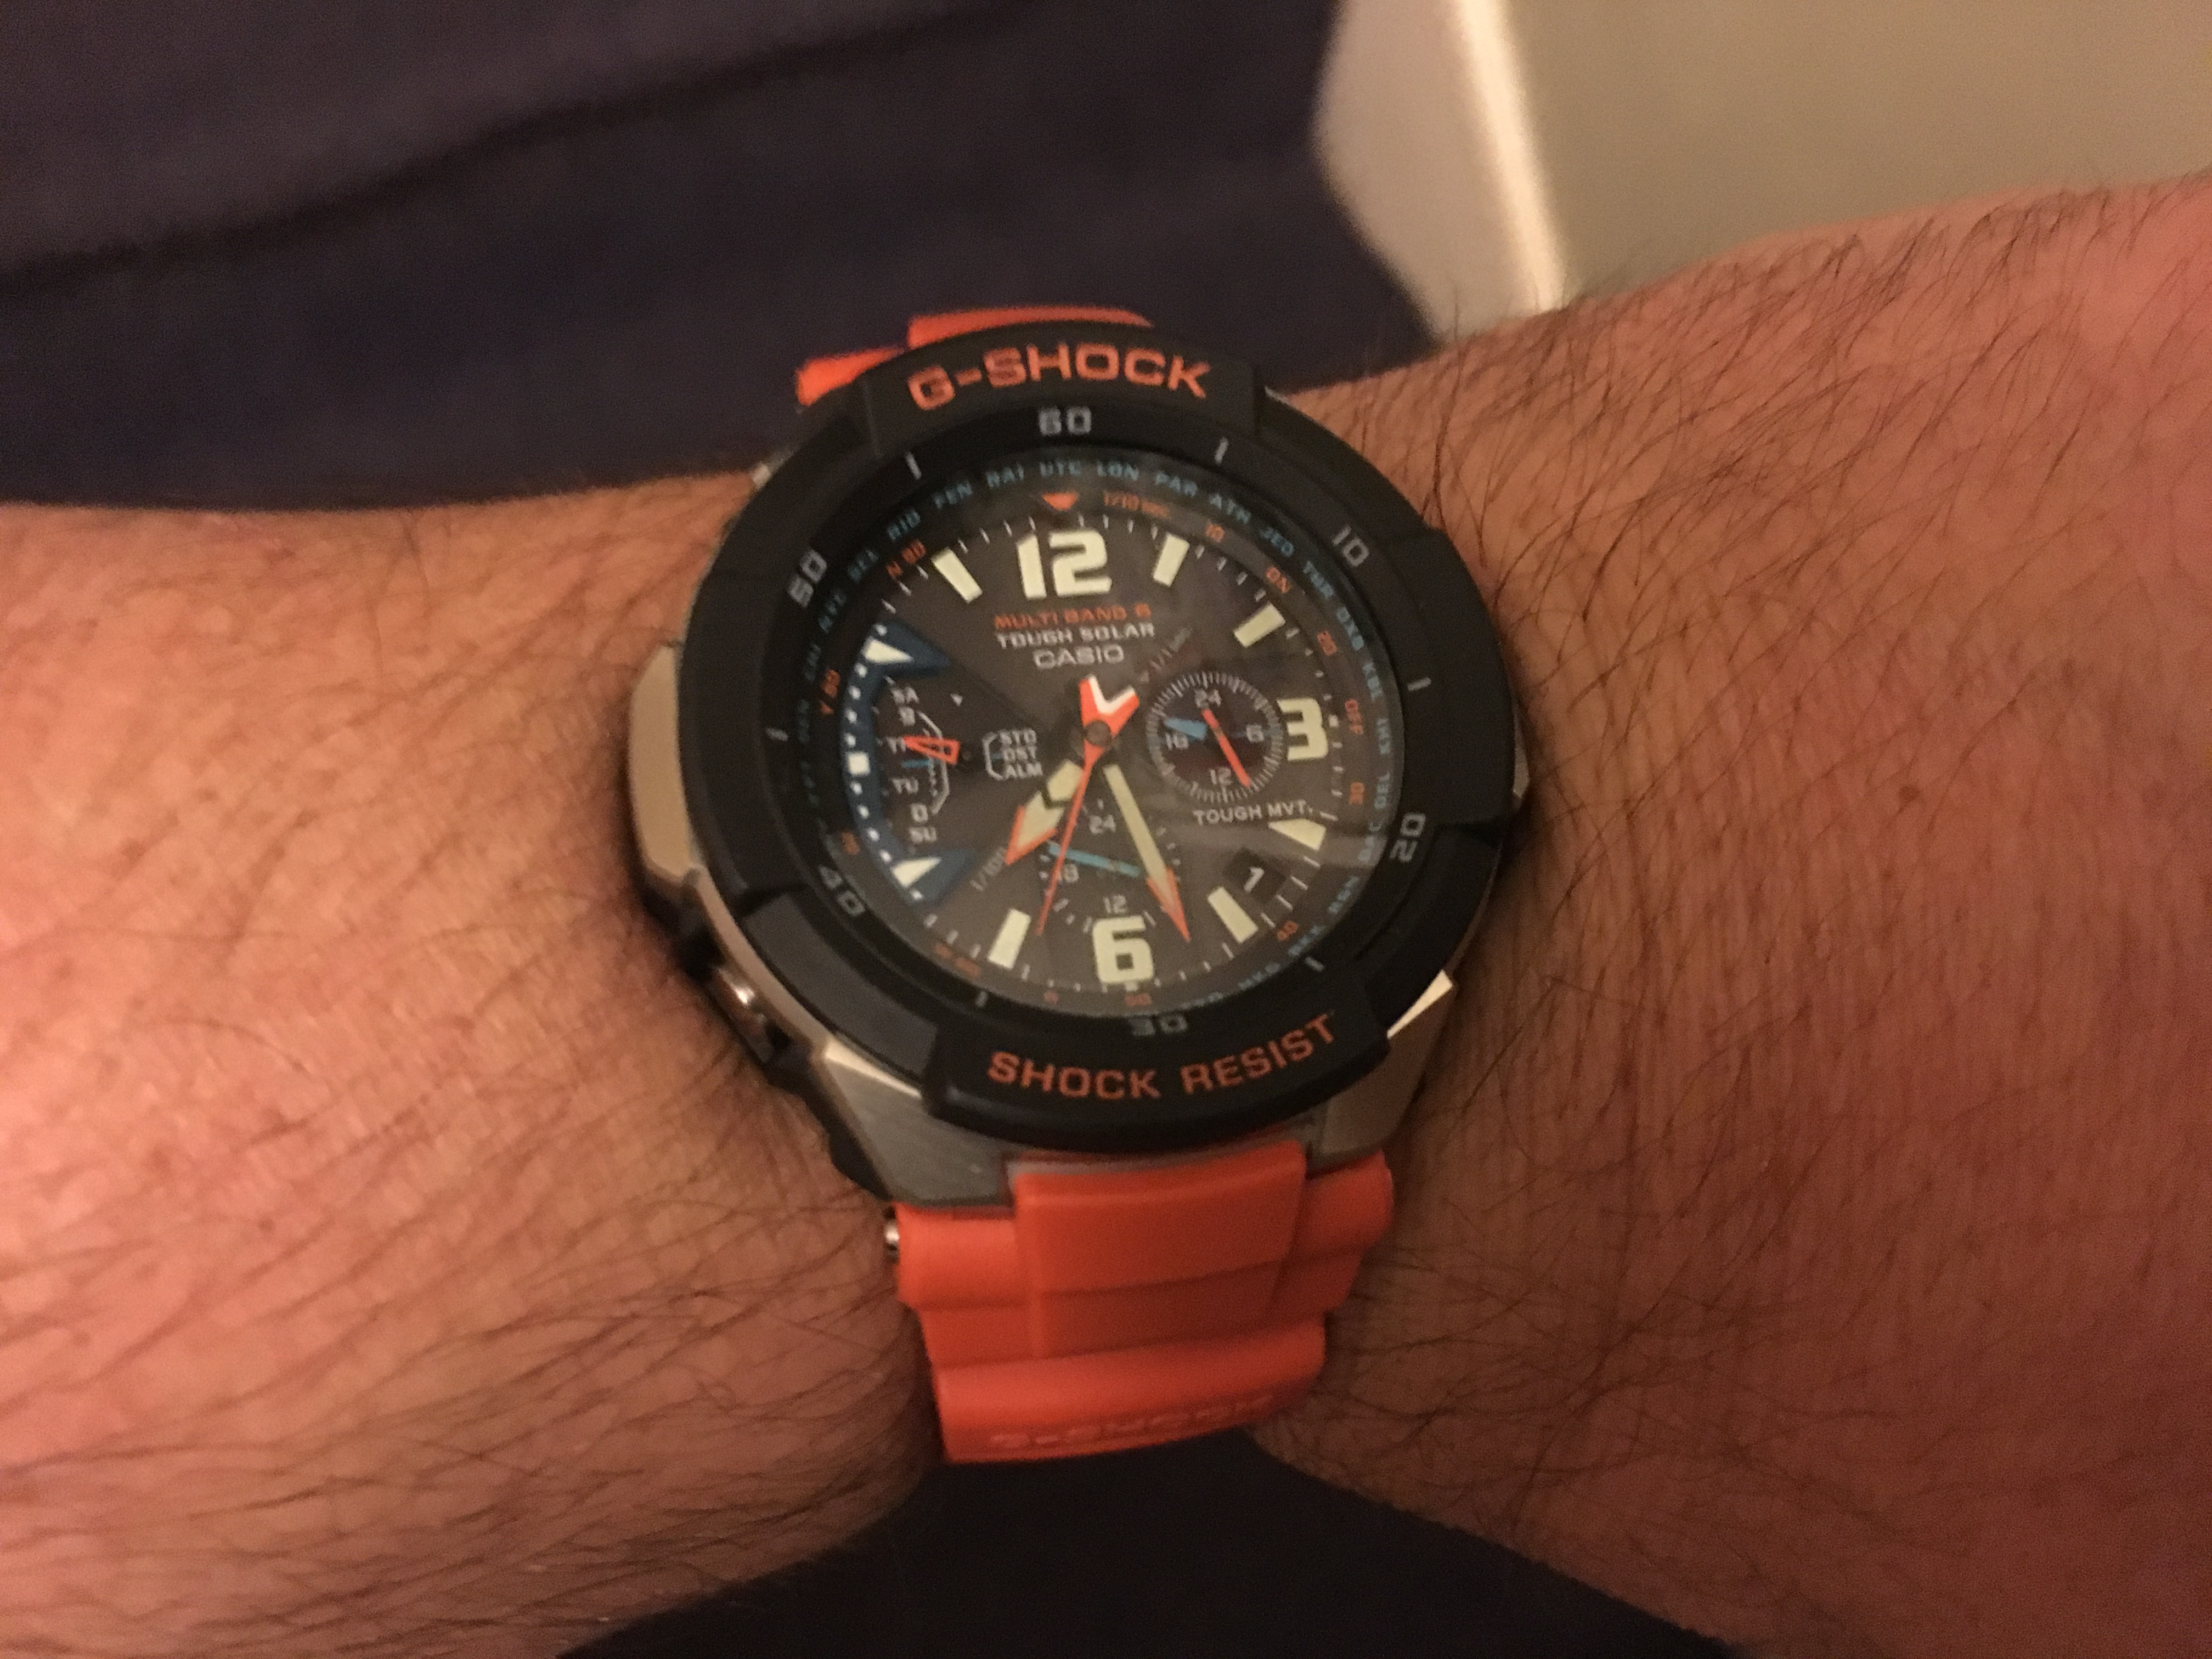 As an international traveller this watch exceeds all my expectations. It's  not only a great timepiece but a treat to the eye.